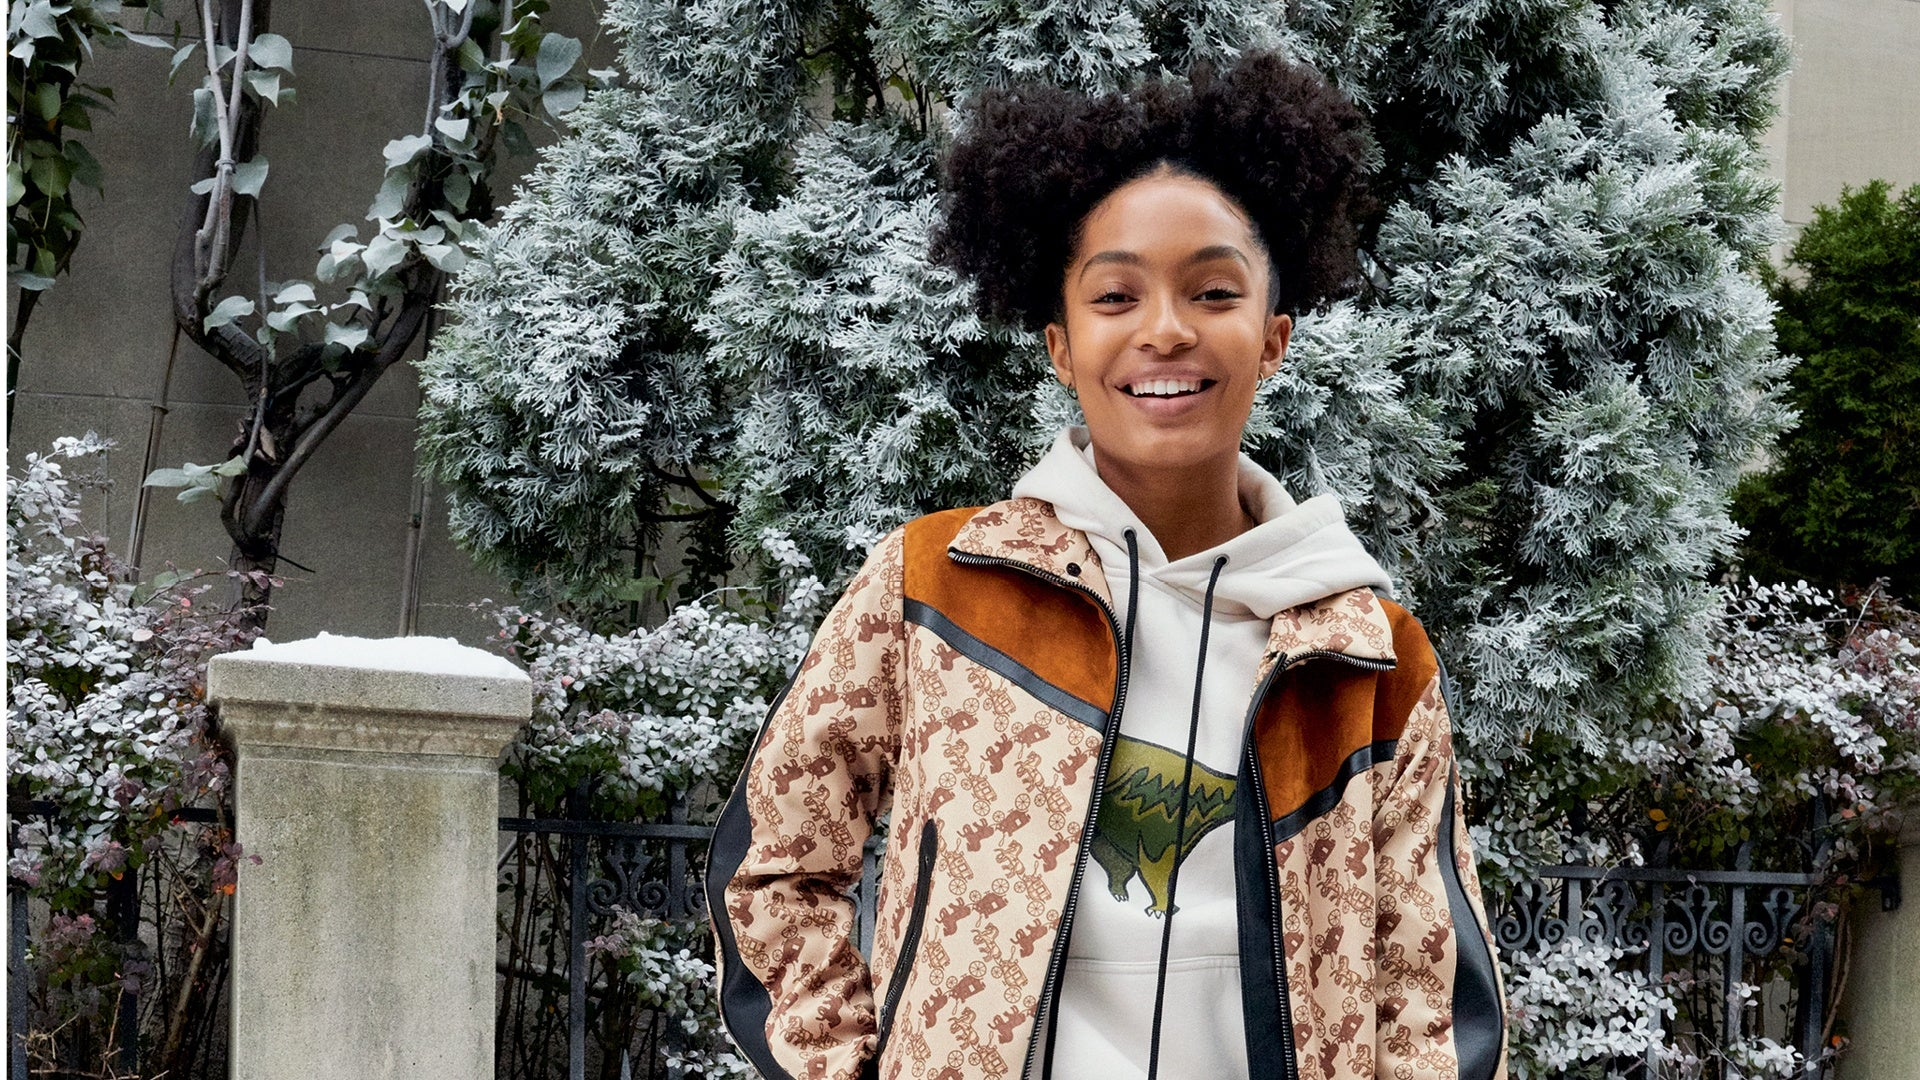 Coach Presents An Inclusive Holiday Campaign